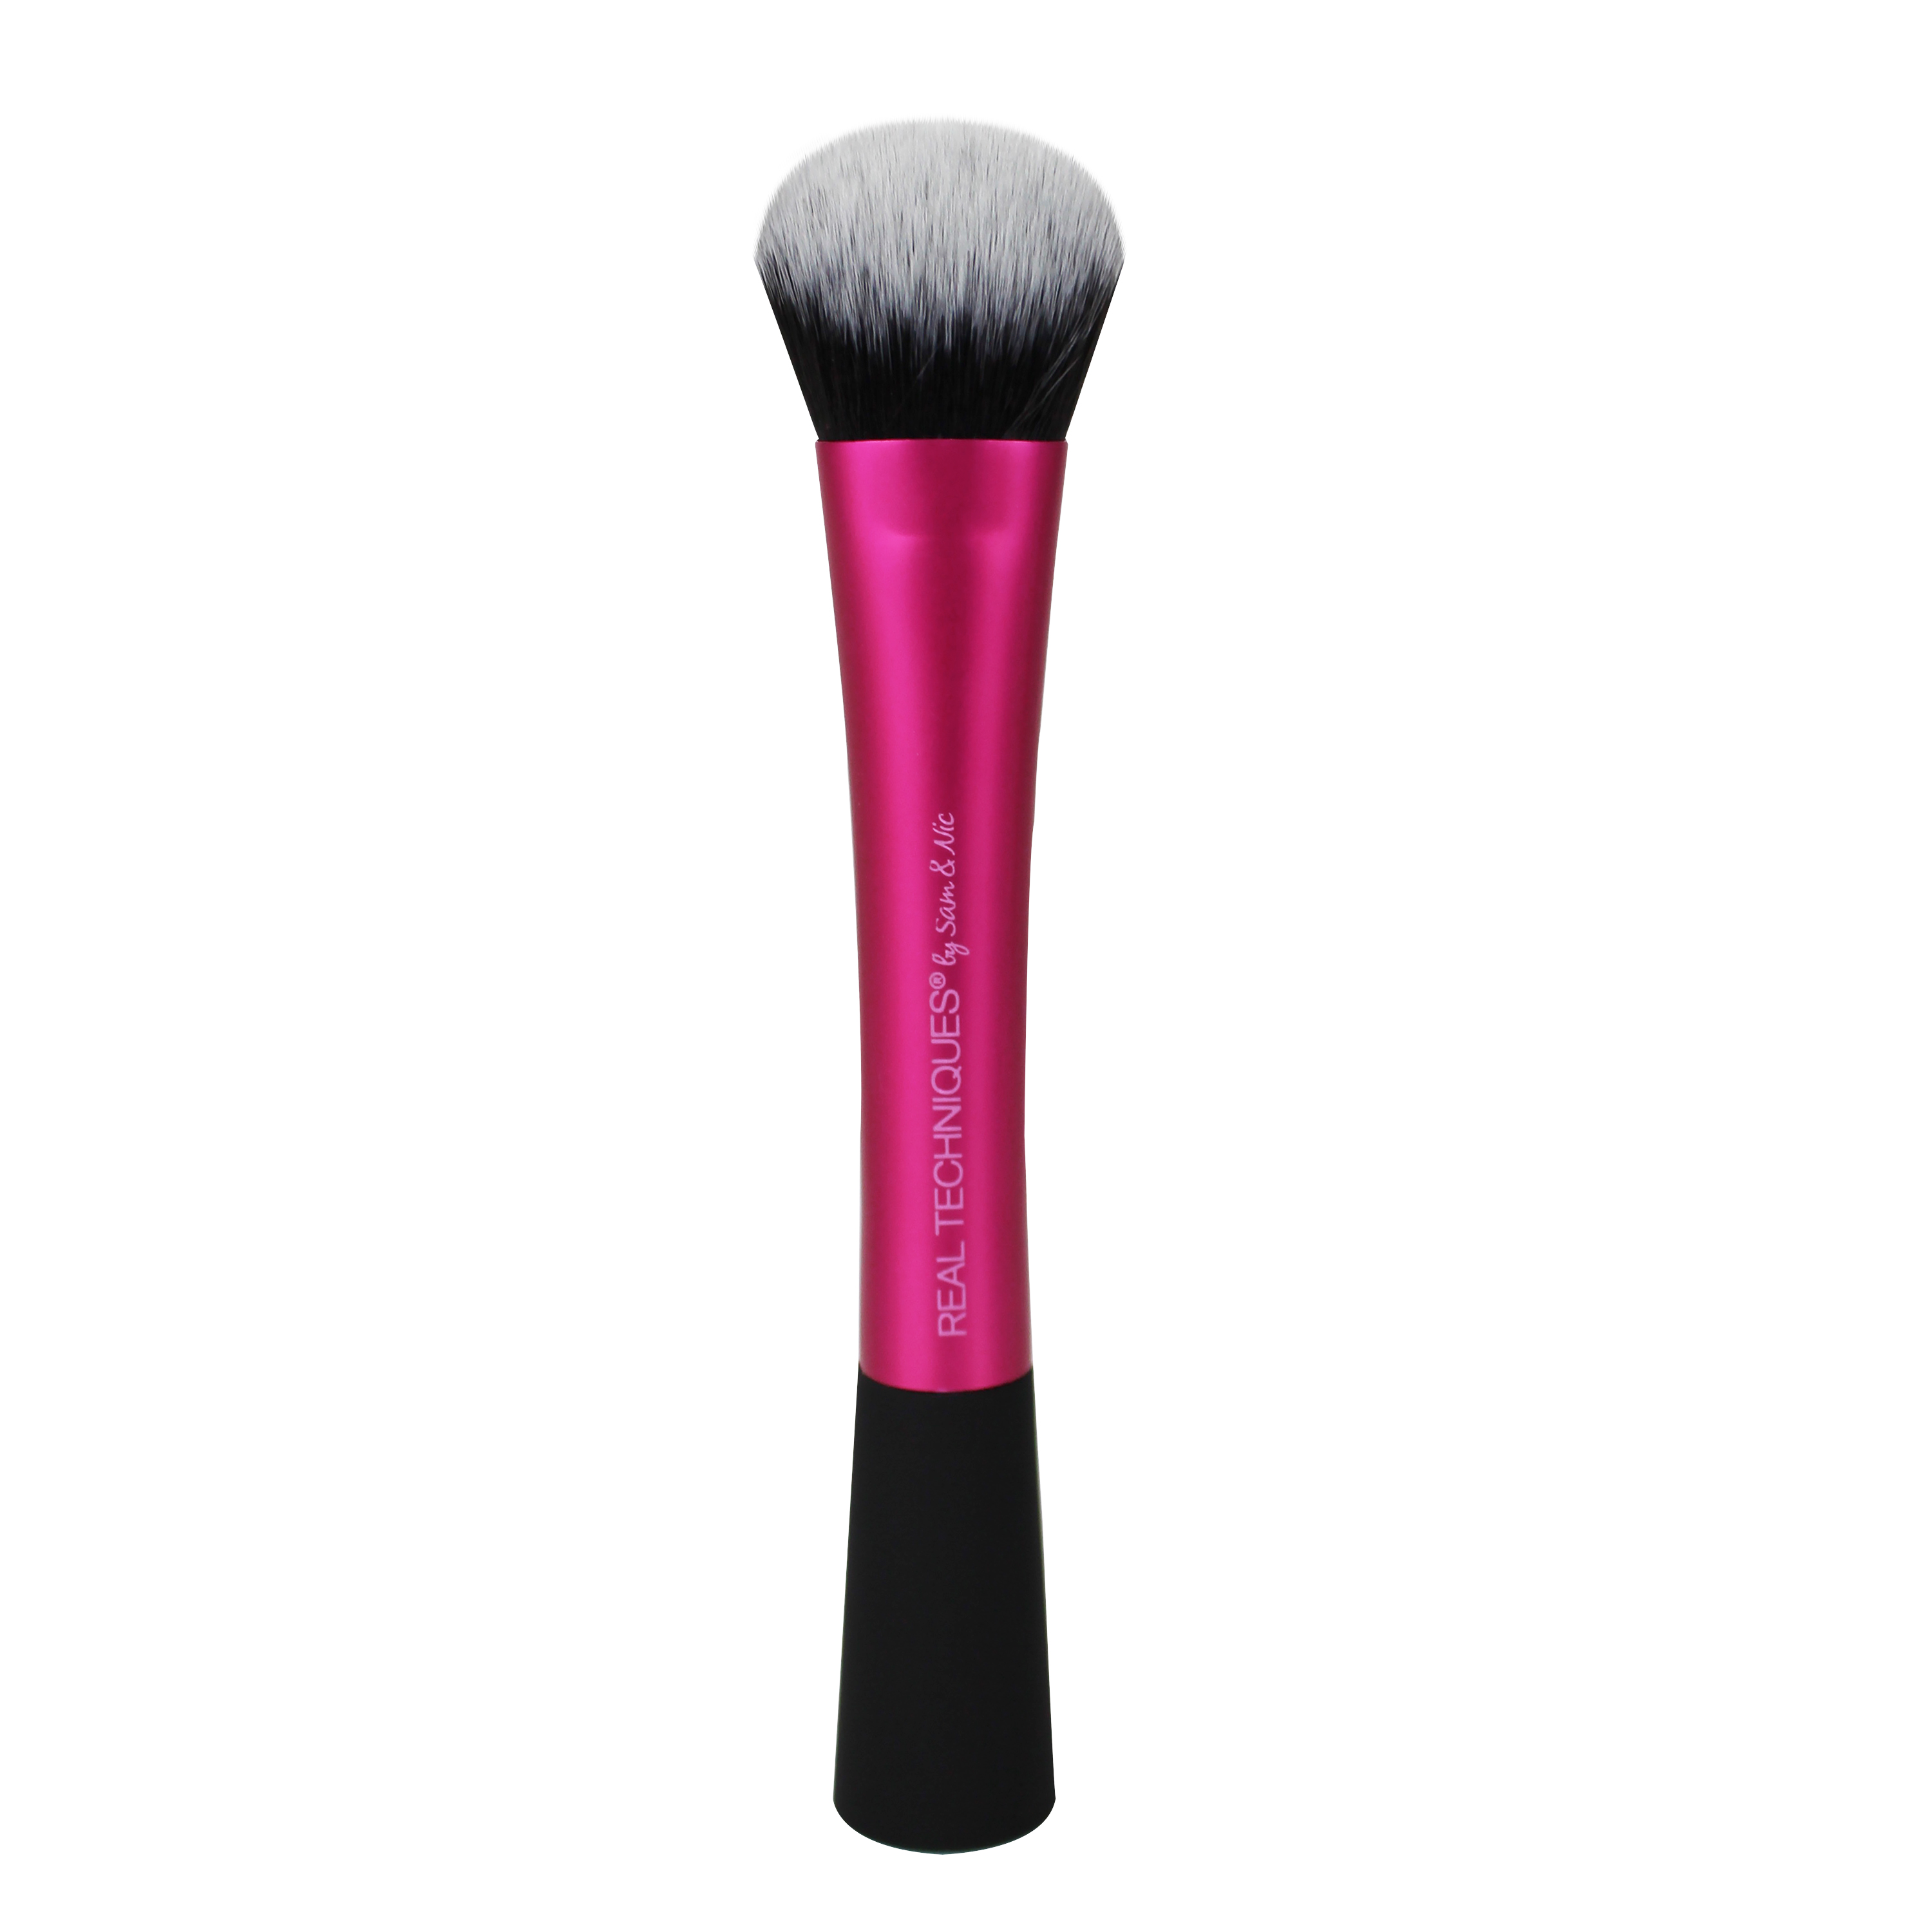 https://realtechniques.com/instapop-cheek-brush/p/1736